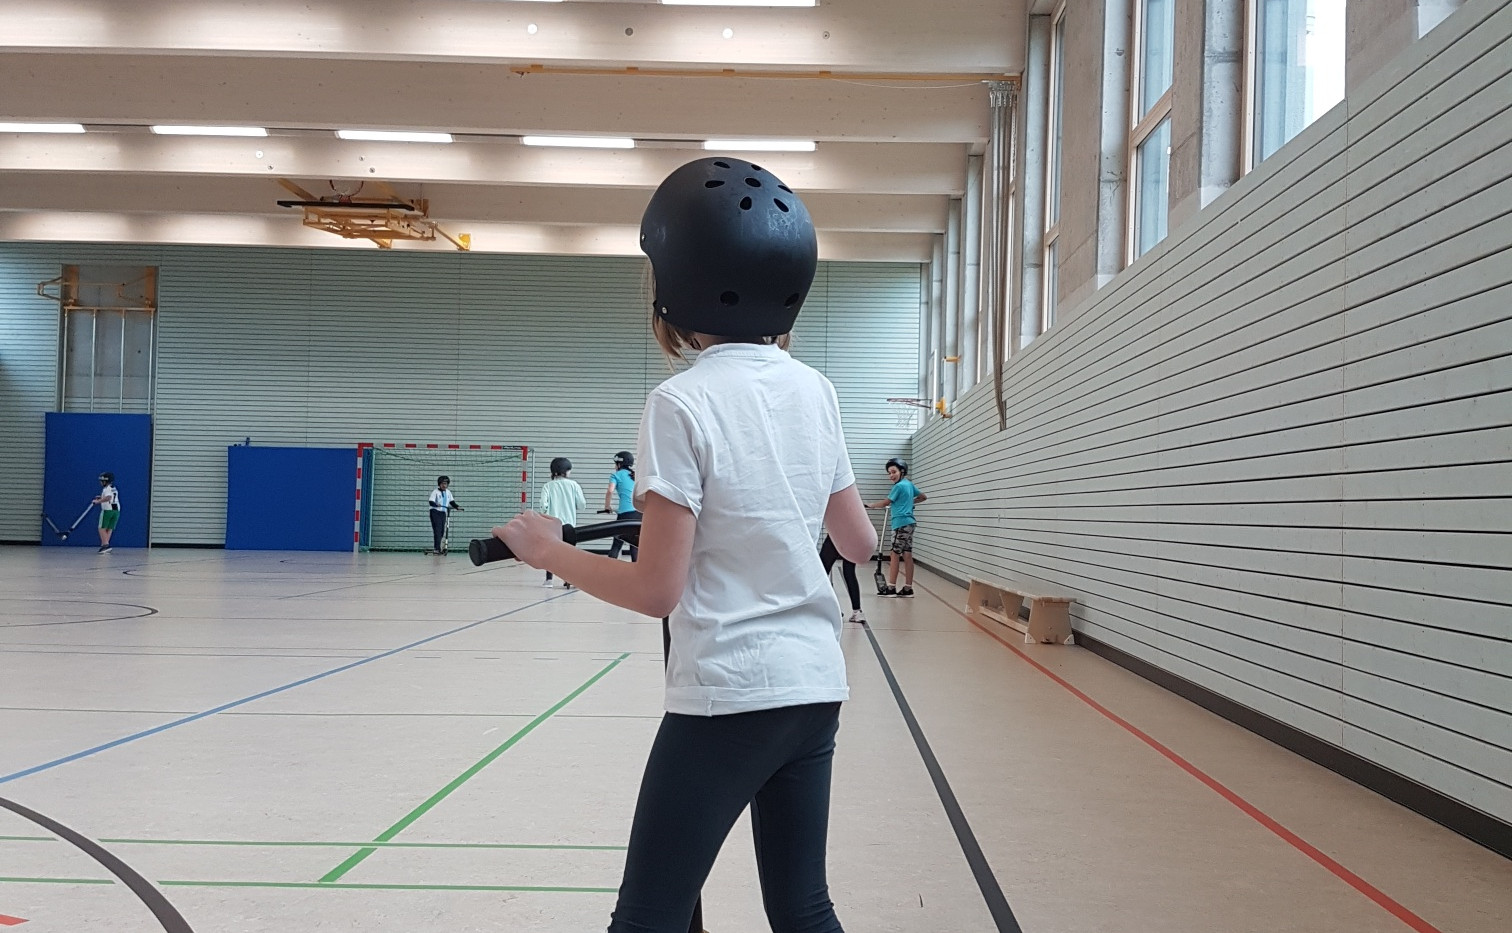 Scooter Turnhalle